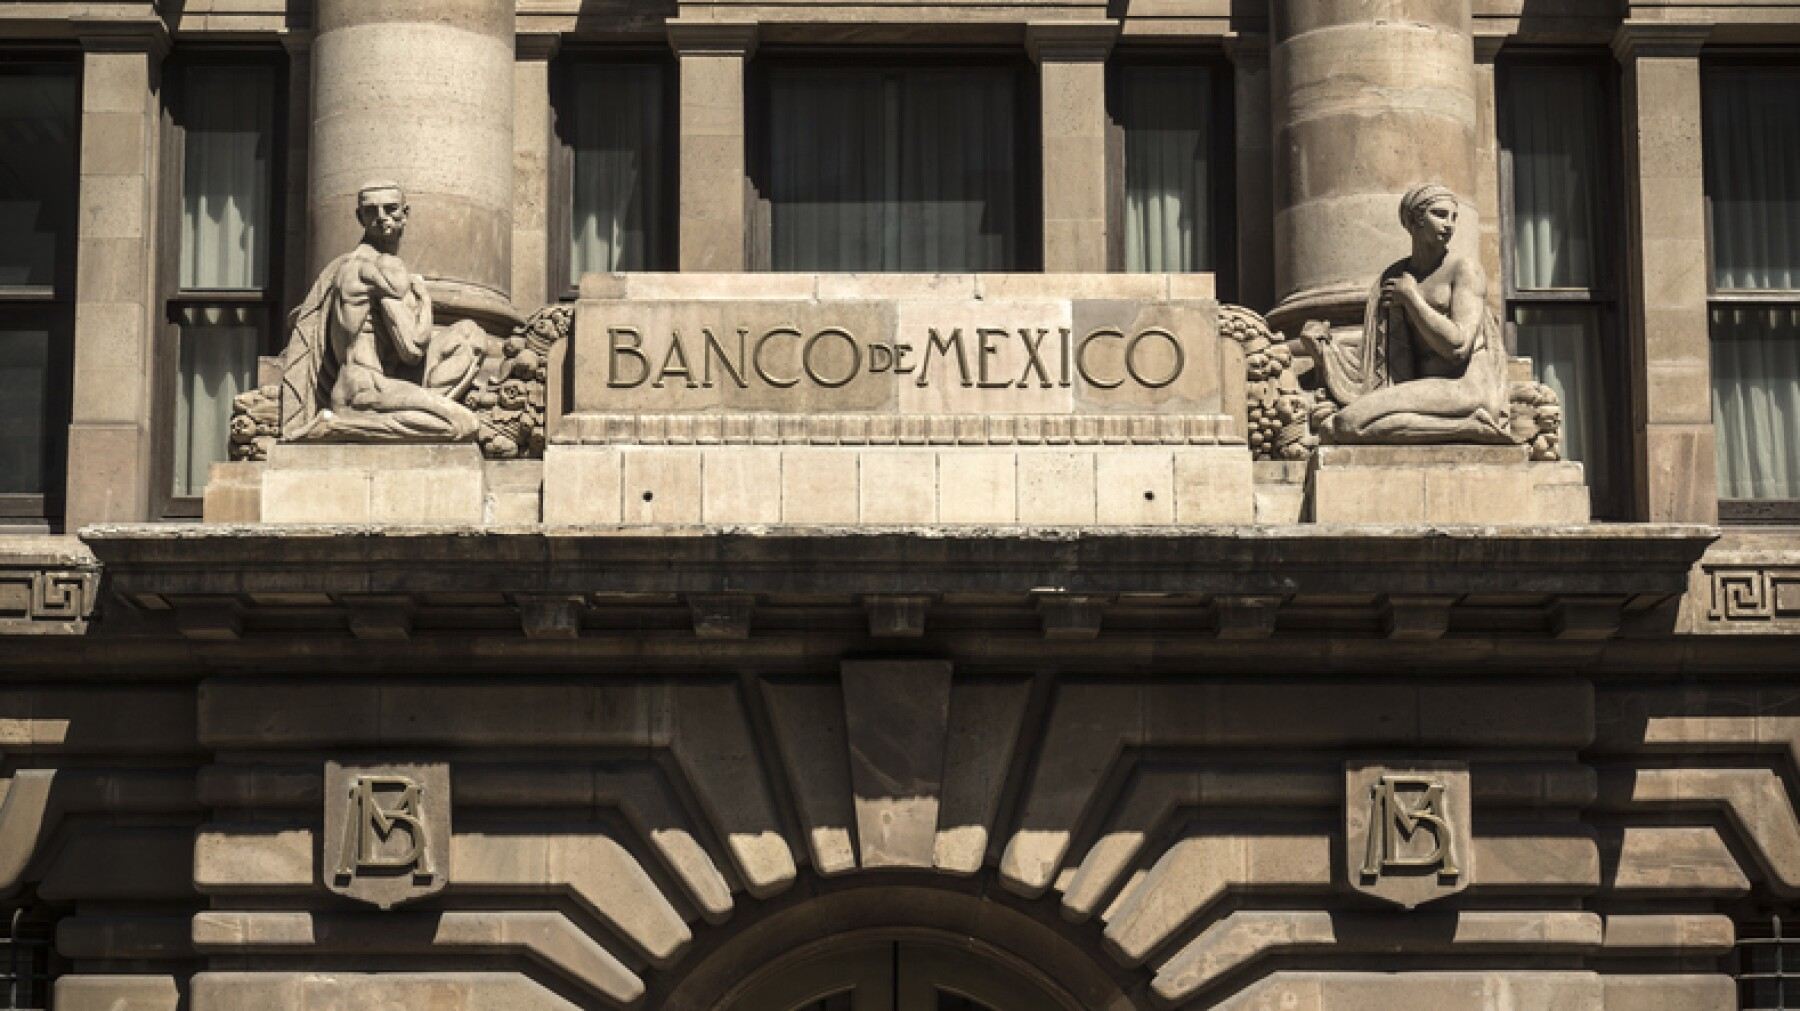 Bank Of Mexico In Mexico City